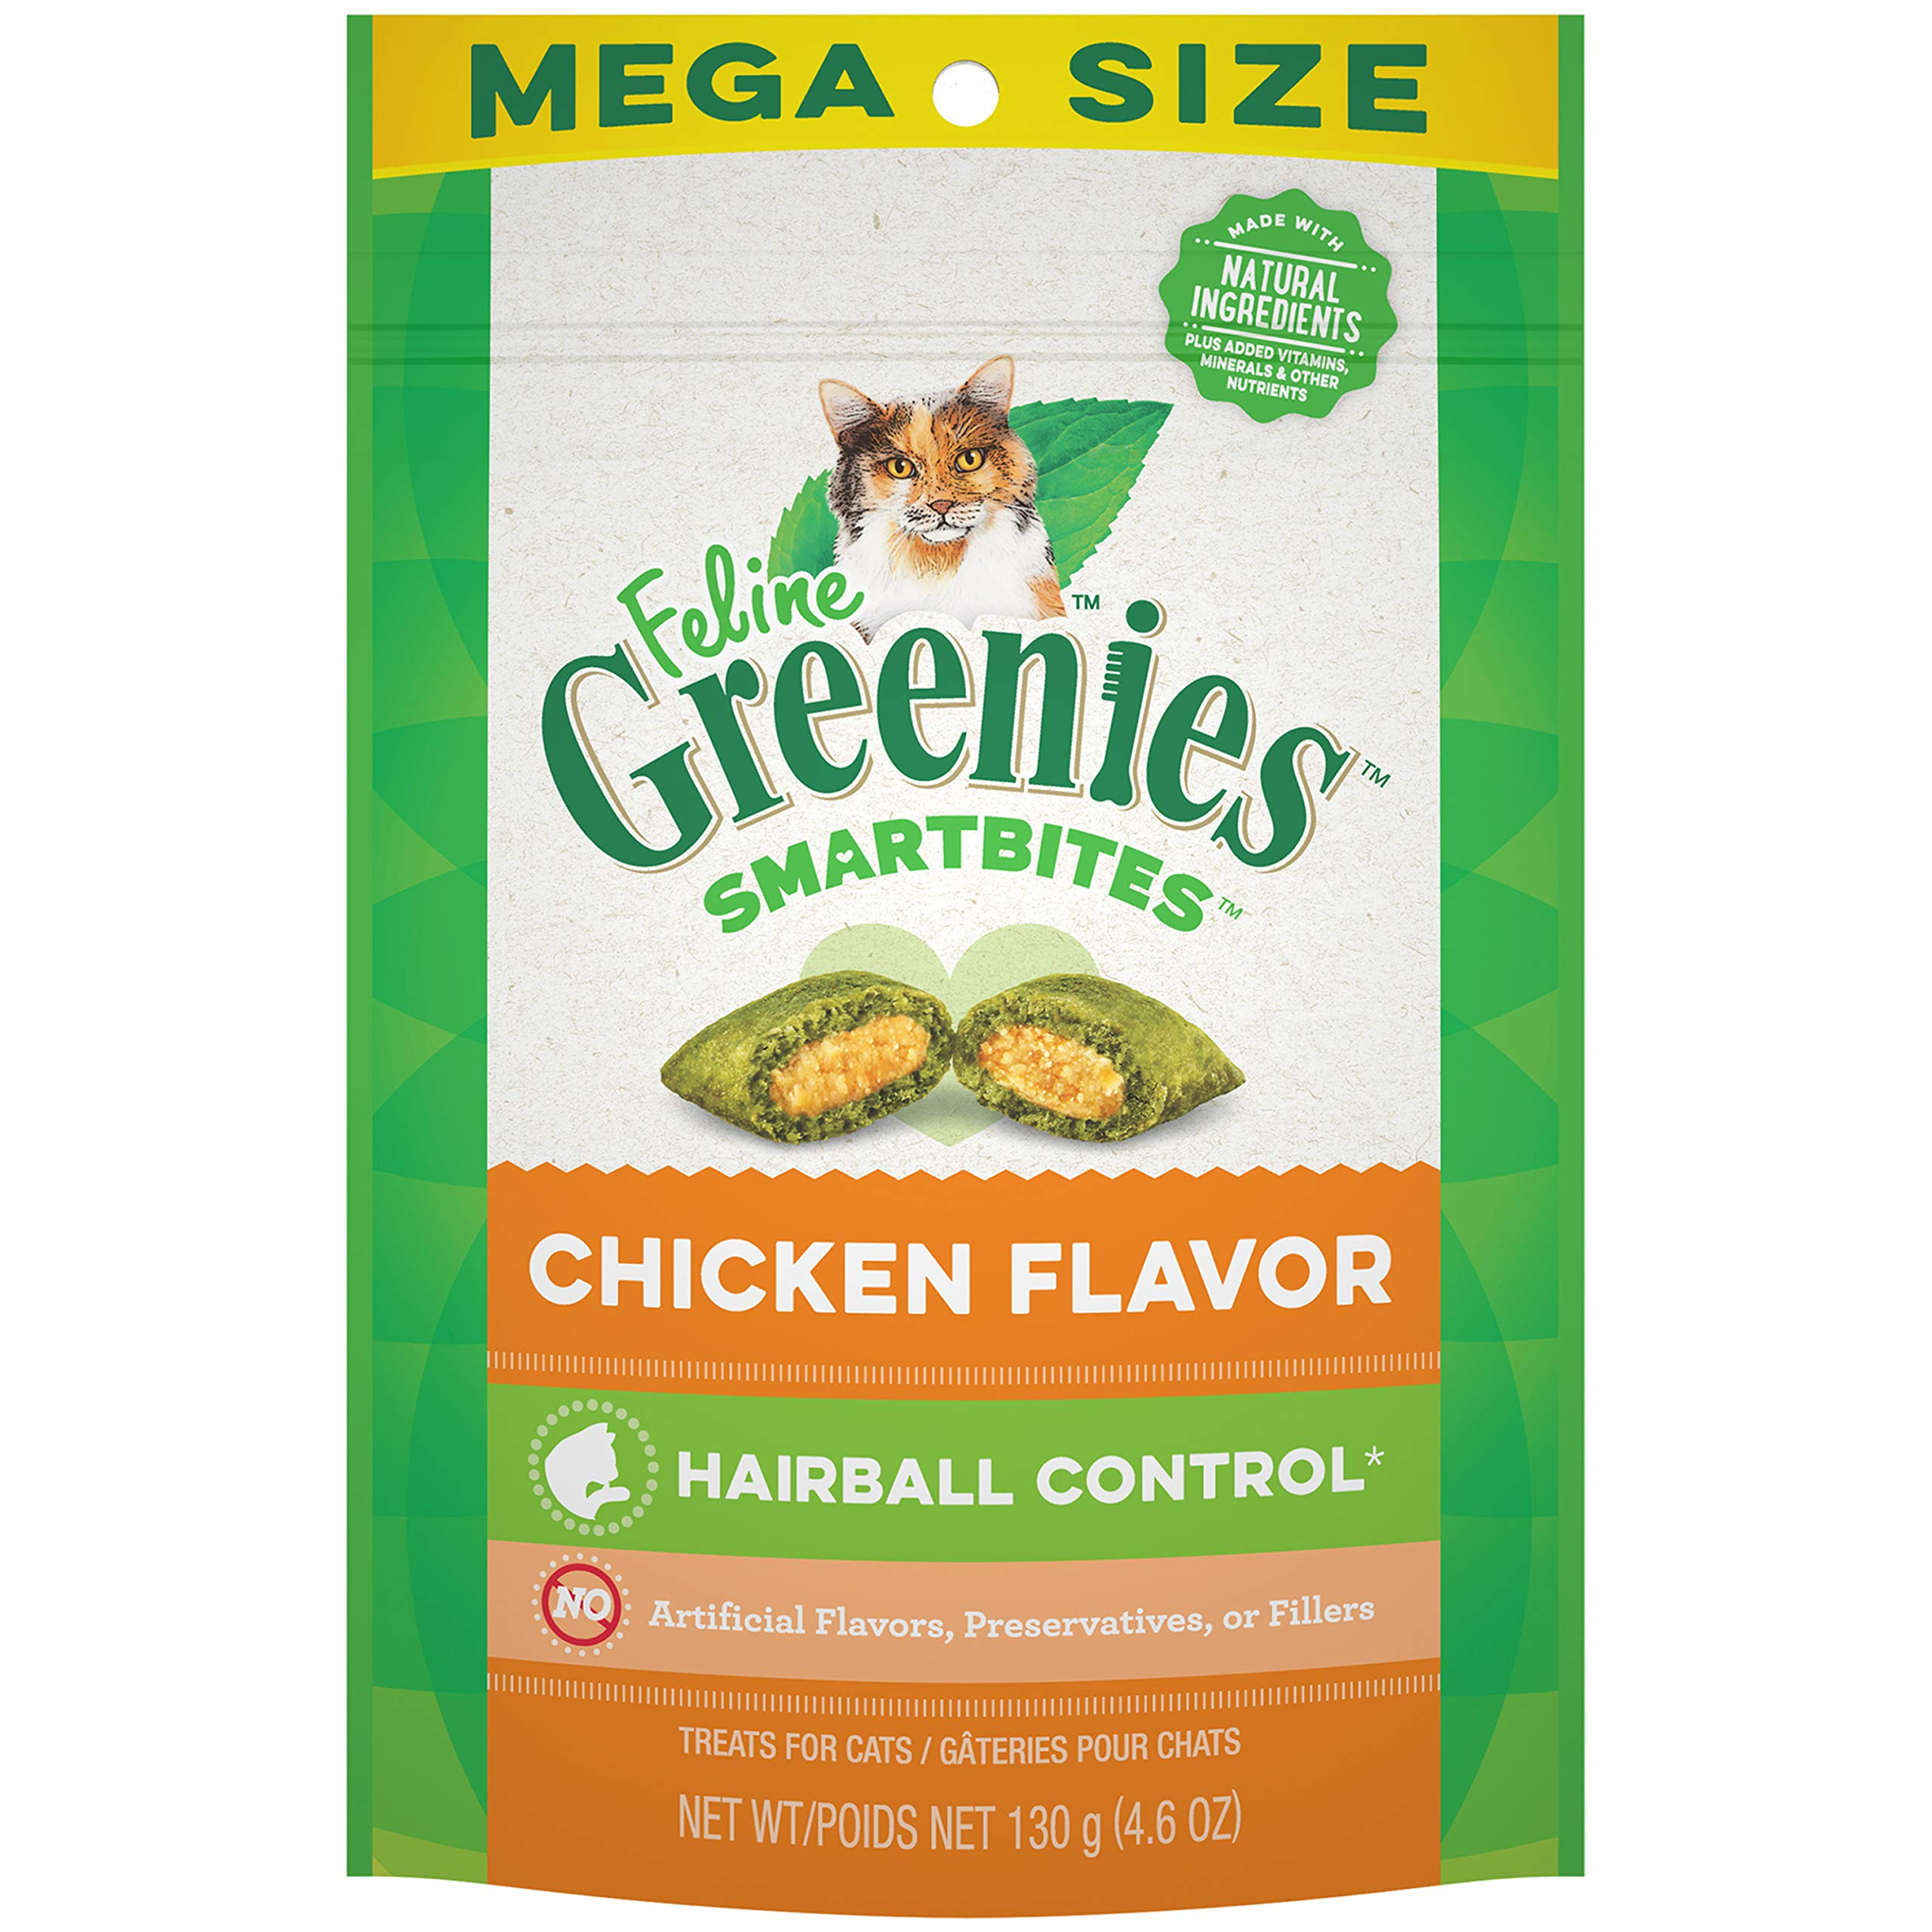 FELINE GREENIES SMARTBITES Hairball Control Natural Cat Treats Chicken Flavor, (10) 4.6 oz. Pouches